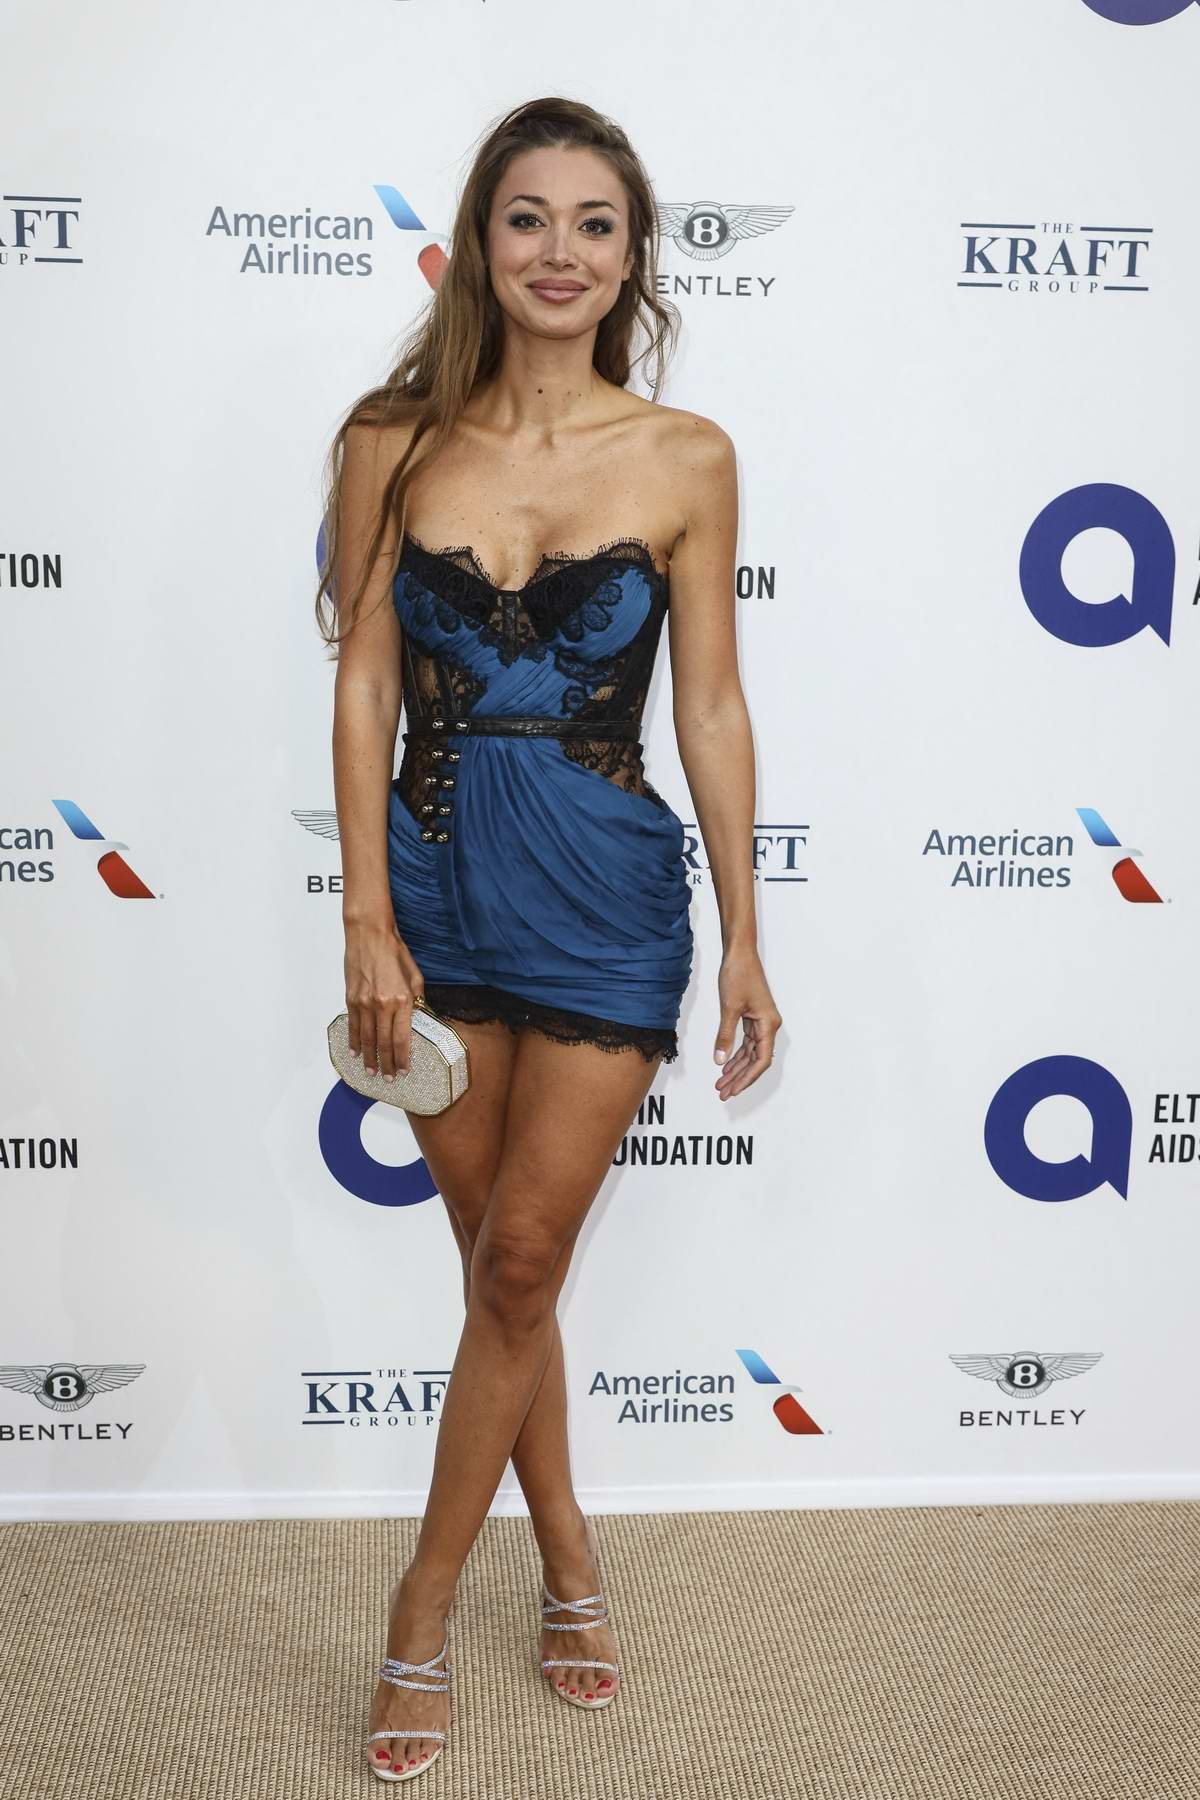 Lara Leito attends the Midsummer Party to benefit the Elton John AIDS Foundation held at Villa Dorane, Antibes, France